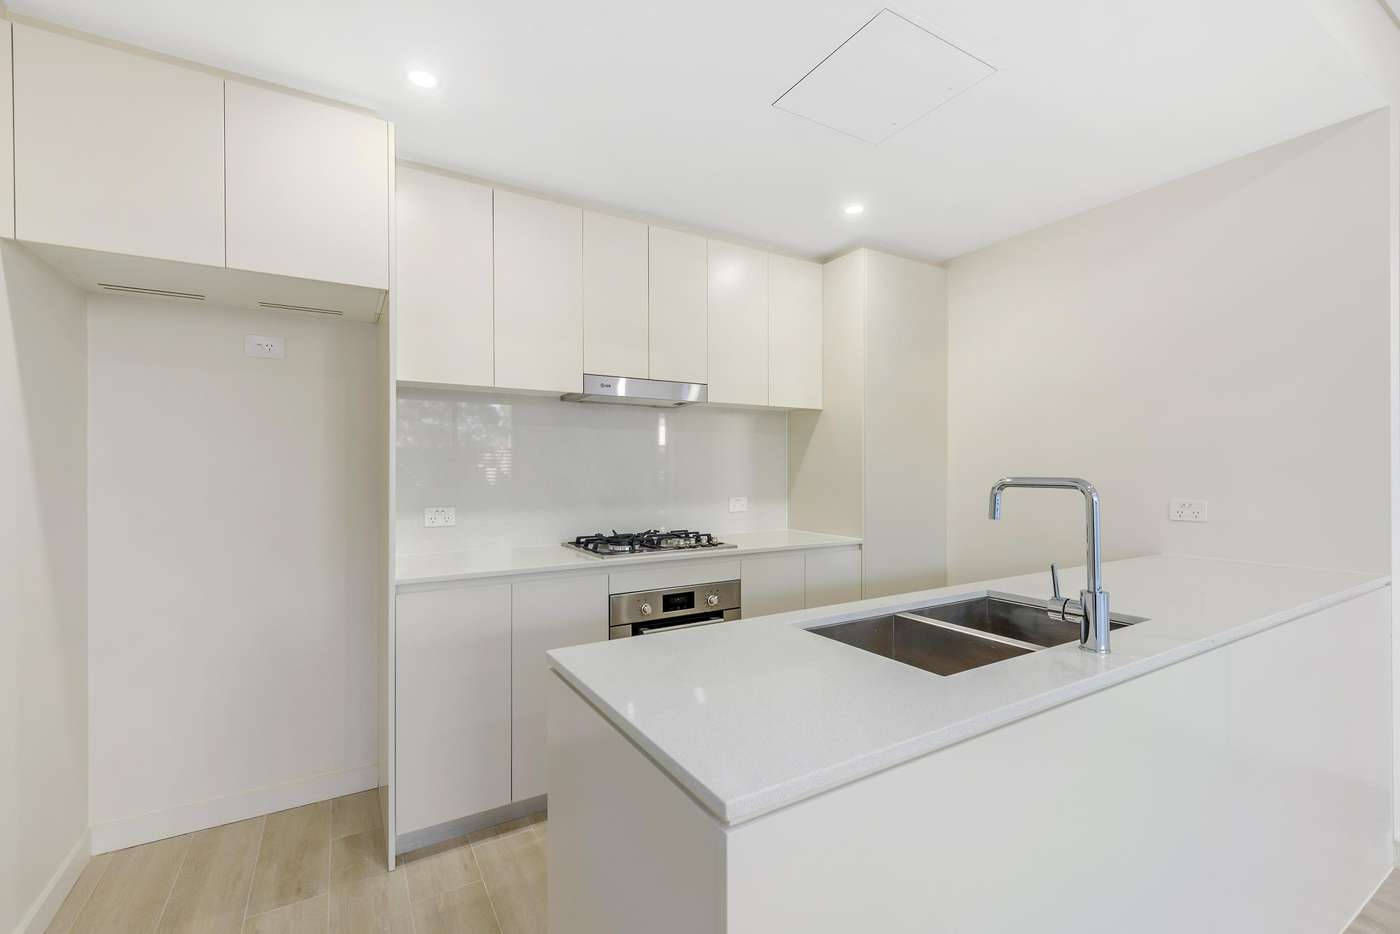 Main view of Homely apartment listing, 304/298 Taren Point Road, Caringbah NSW 2229